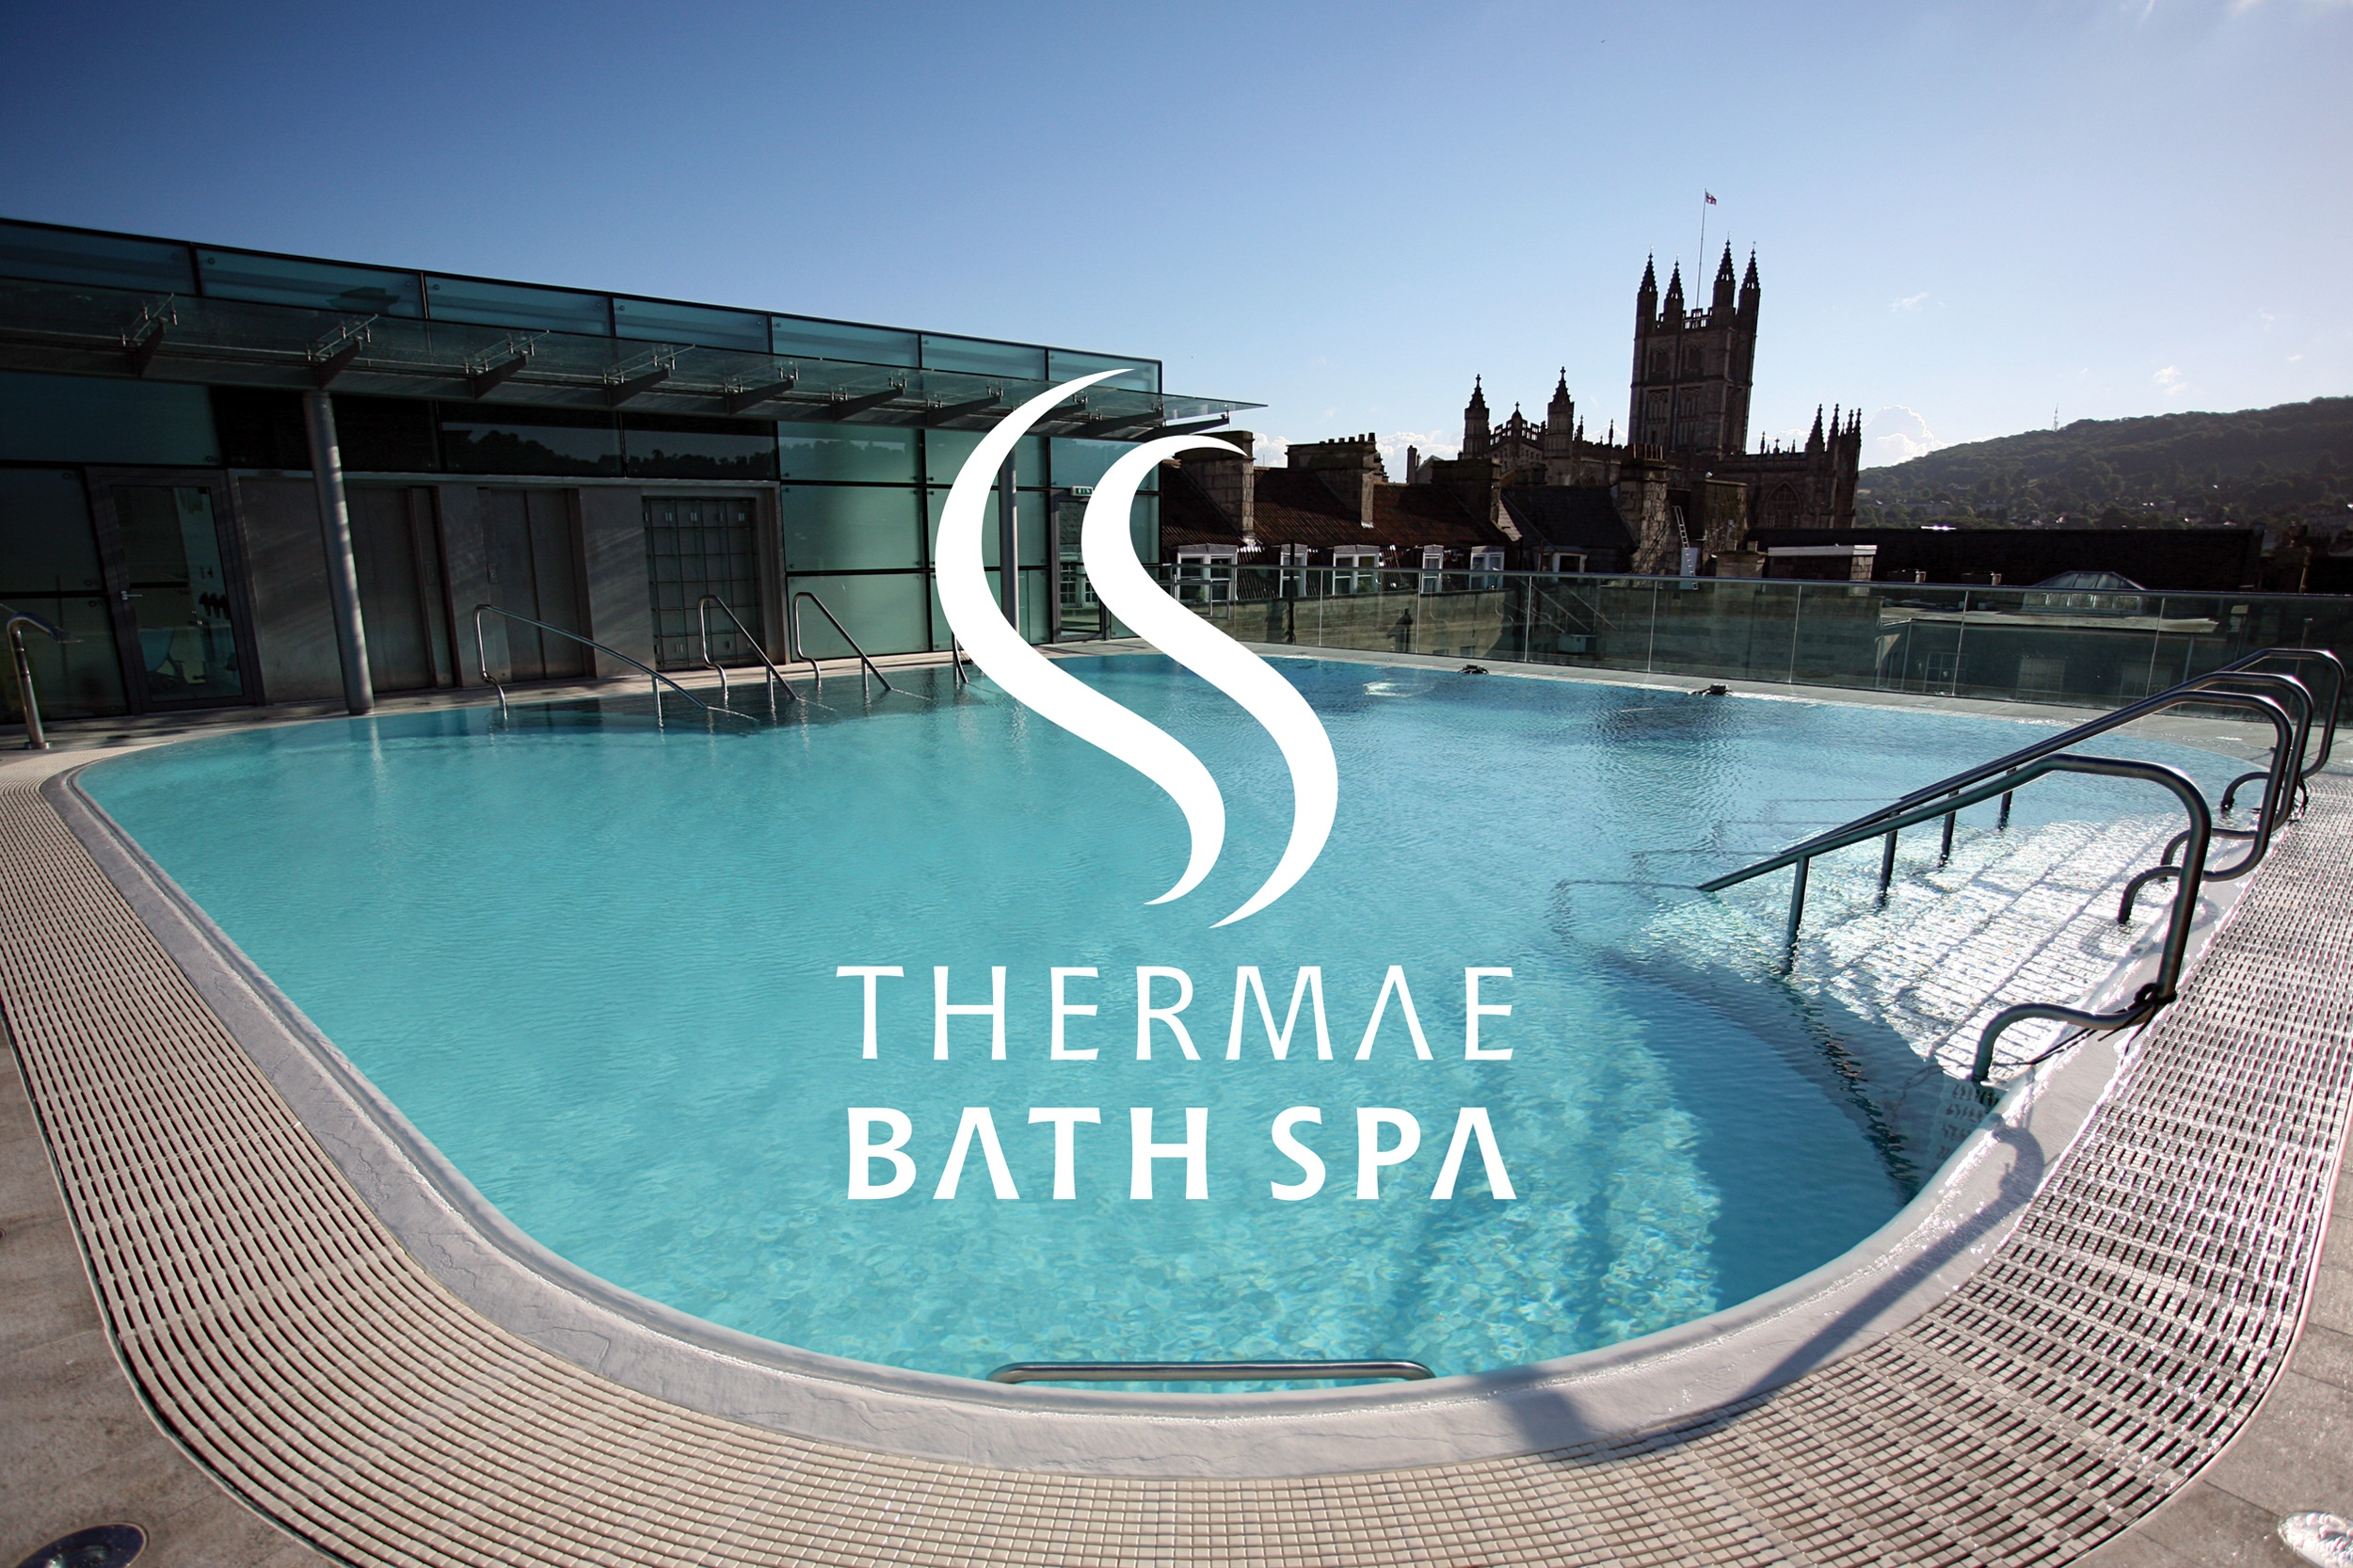 Thermae Bath Spa branding and signage — Mytton Williams